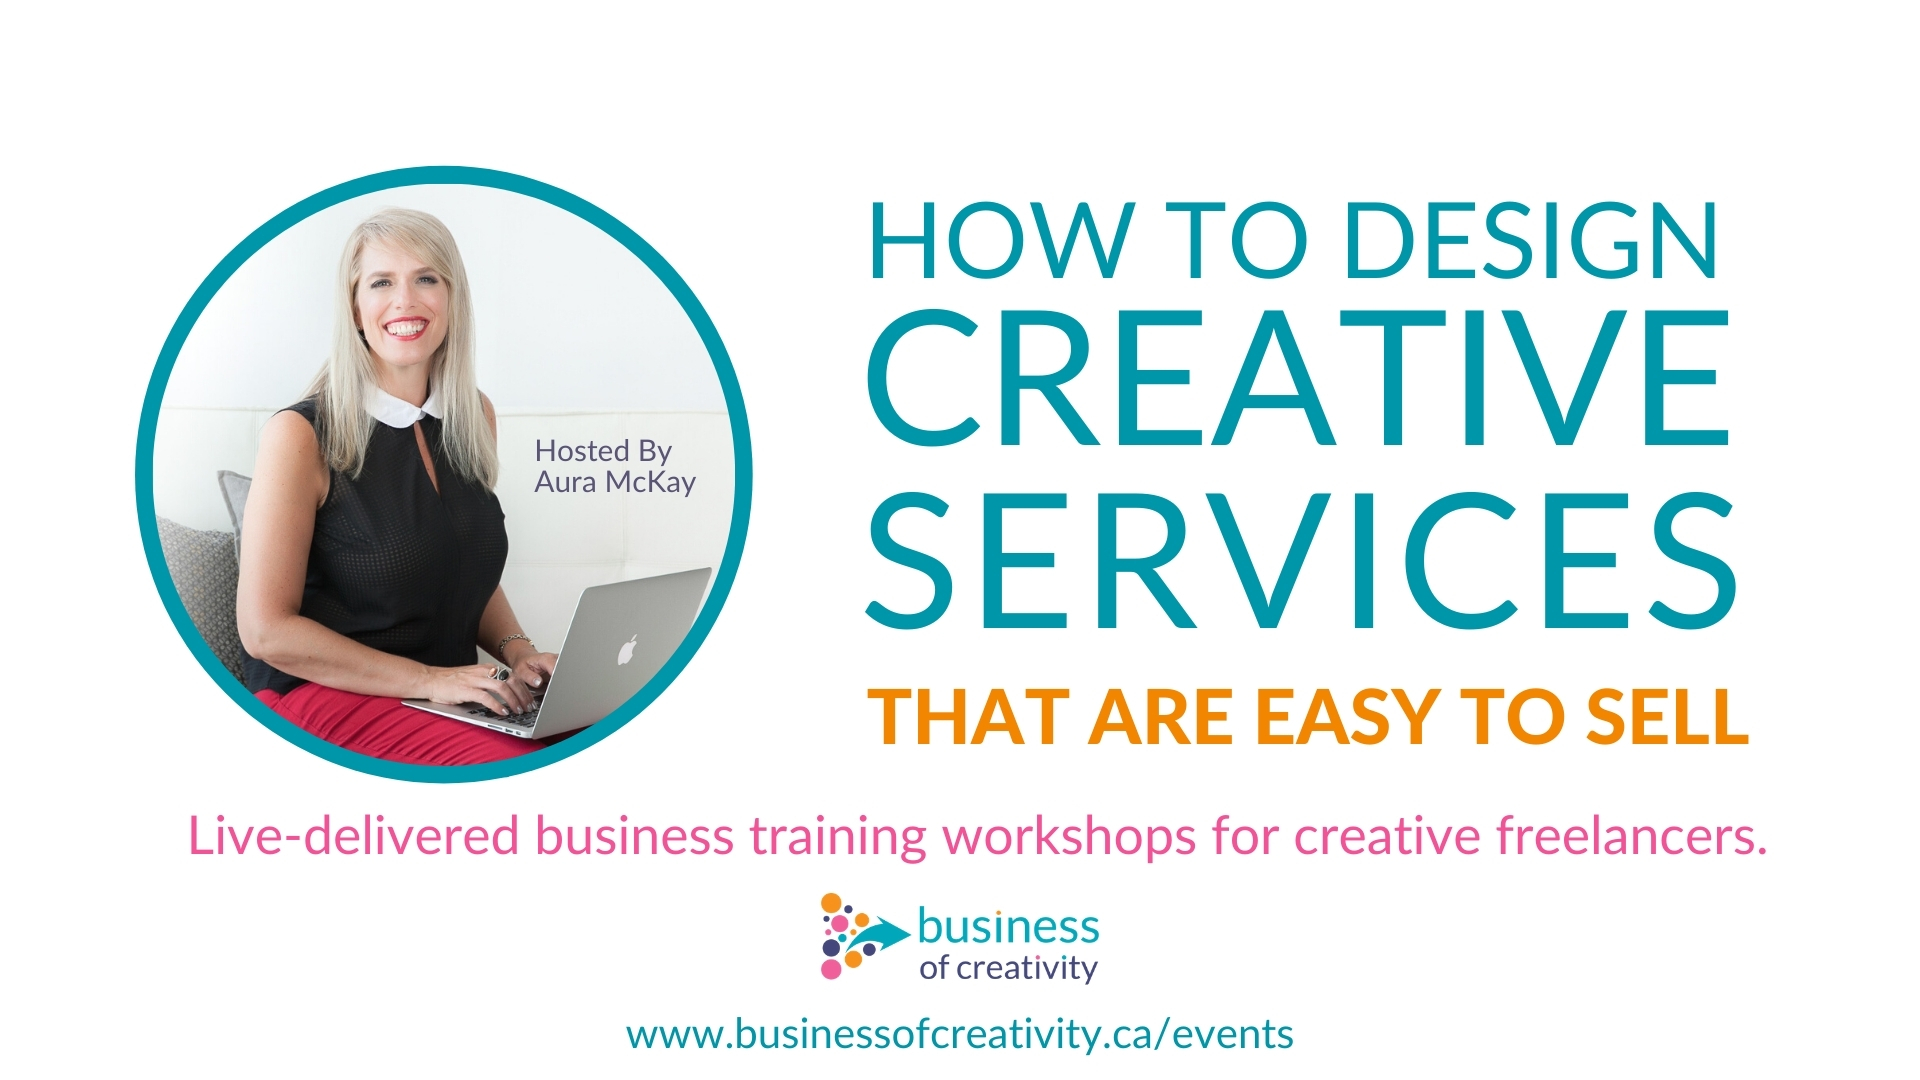 The Confident Creative Series of free, live delivered workshops and webinars for creative freelancers with Aura McKay